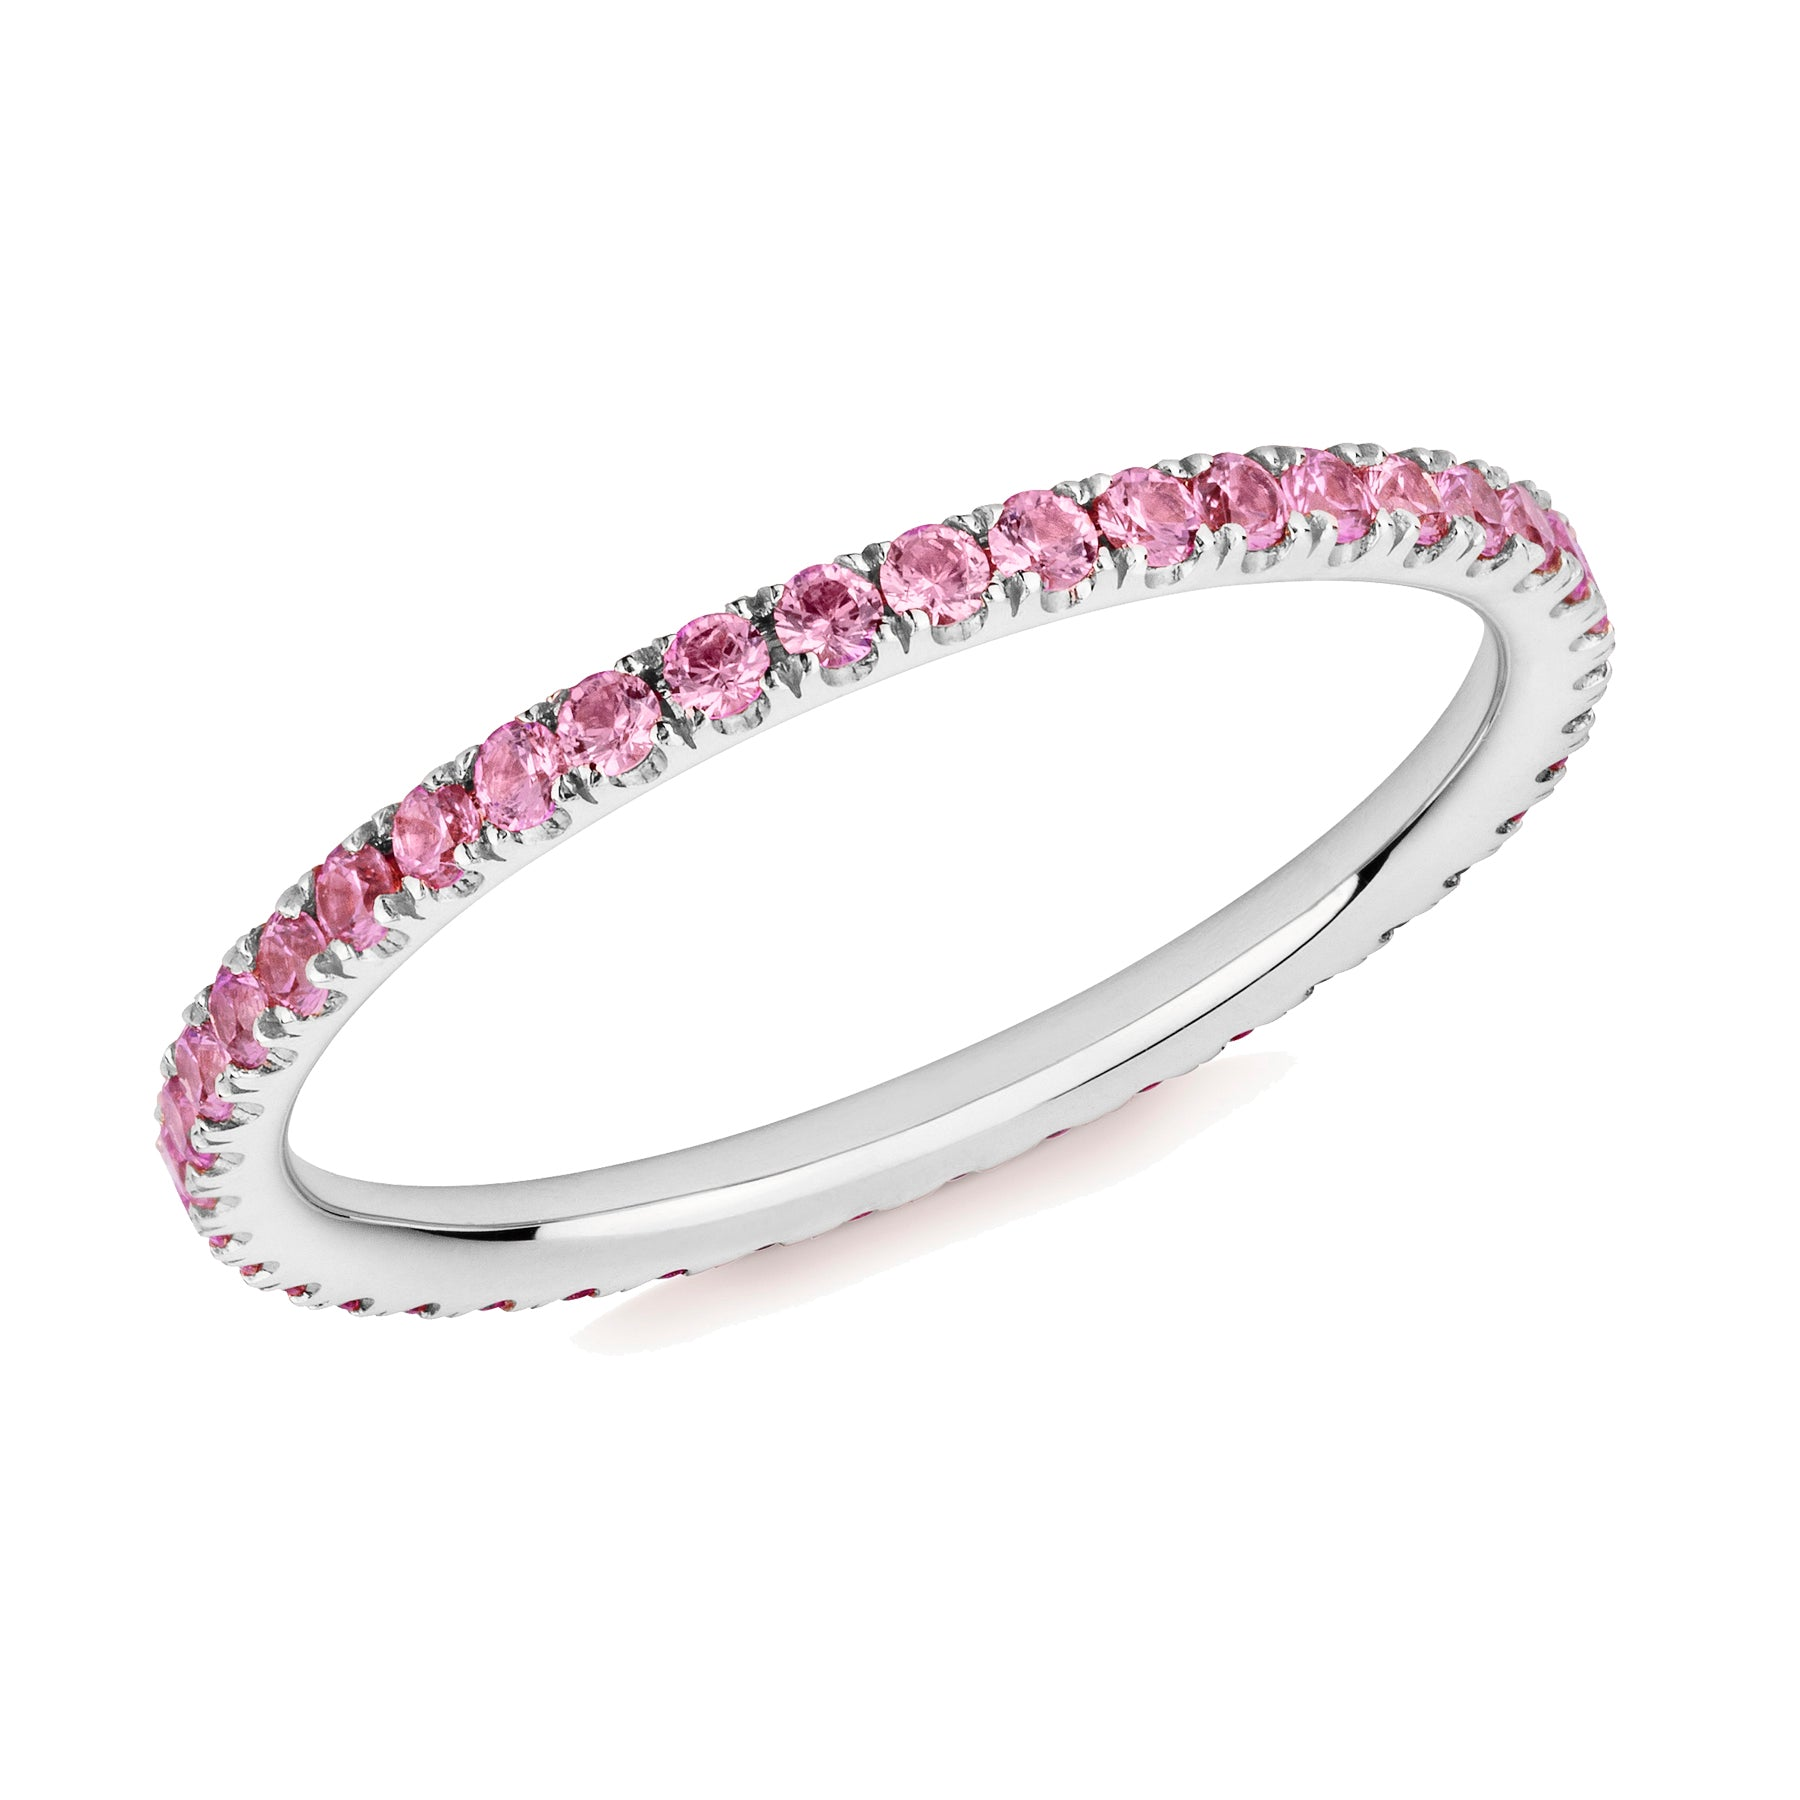 Pink sapphire eternity ring in platinum on a white background.